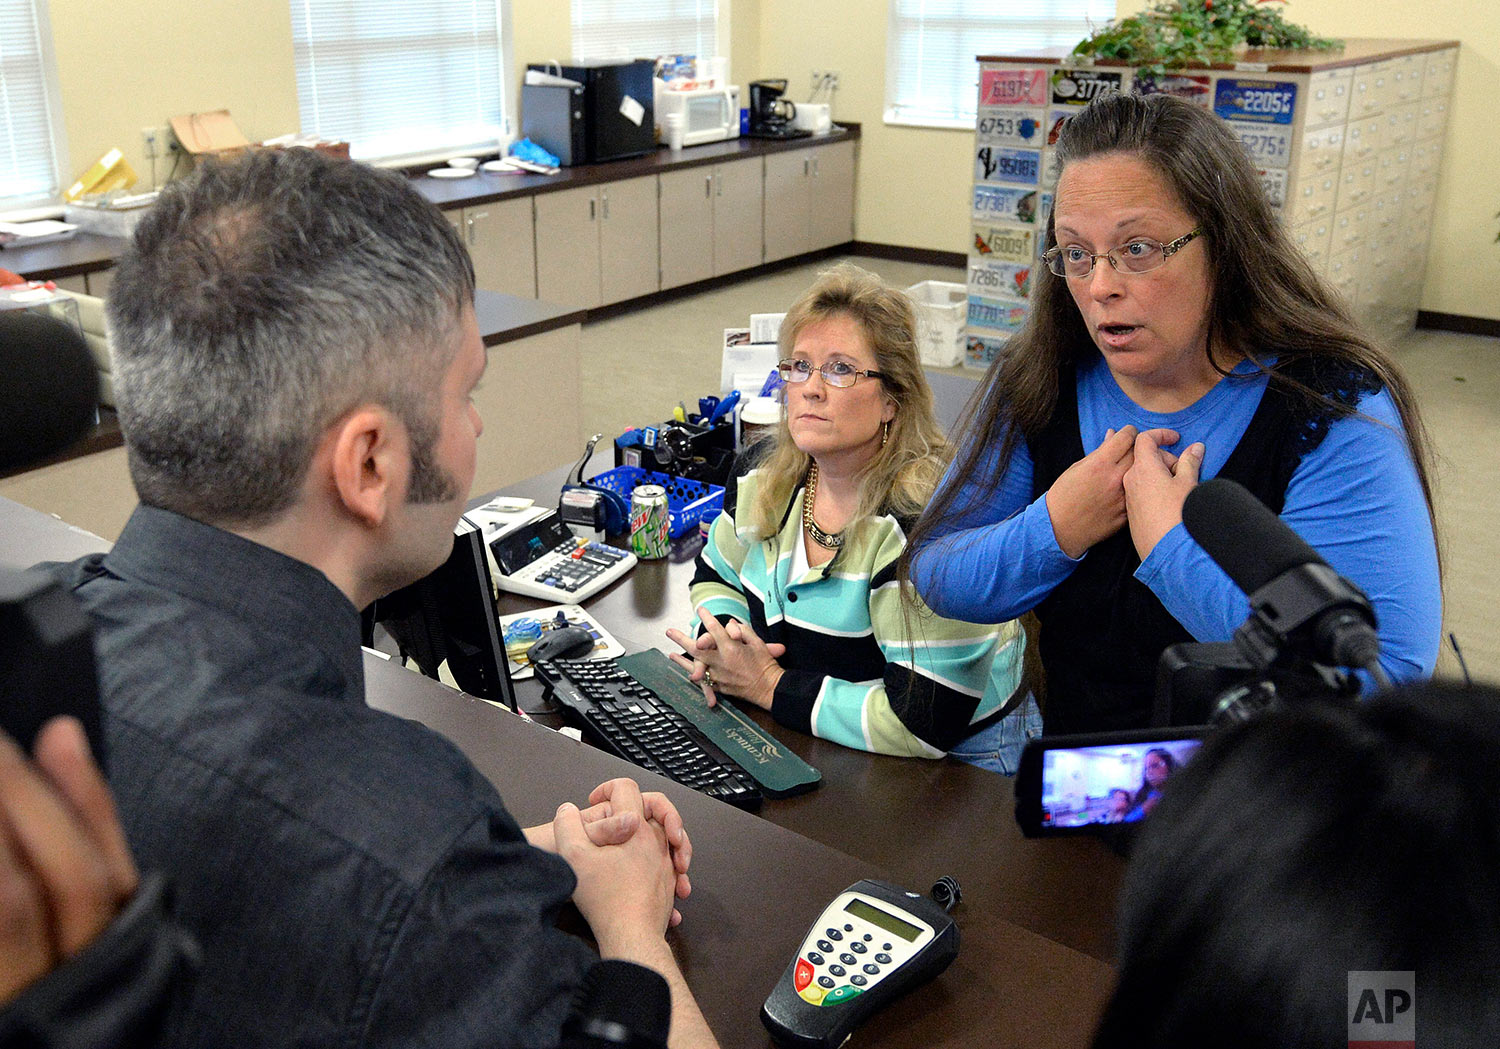 In this Tuesday, Sept. 1, 2015 file photo, Rowan County Clerk Kim Davis, right, talks with David Moore following her office's refusal to issue marriage licenses at the Rowan County Courthouse in Morehead, Ky. Although her appeal to the U.S. Supreme Court was denied, Davis still refuses to issue marriage licenses. (AP Photo/Timothy D. Easley)